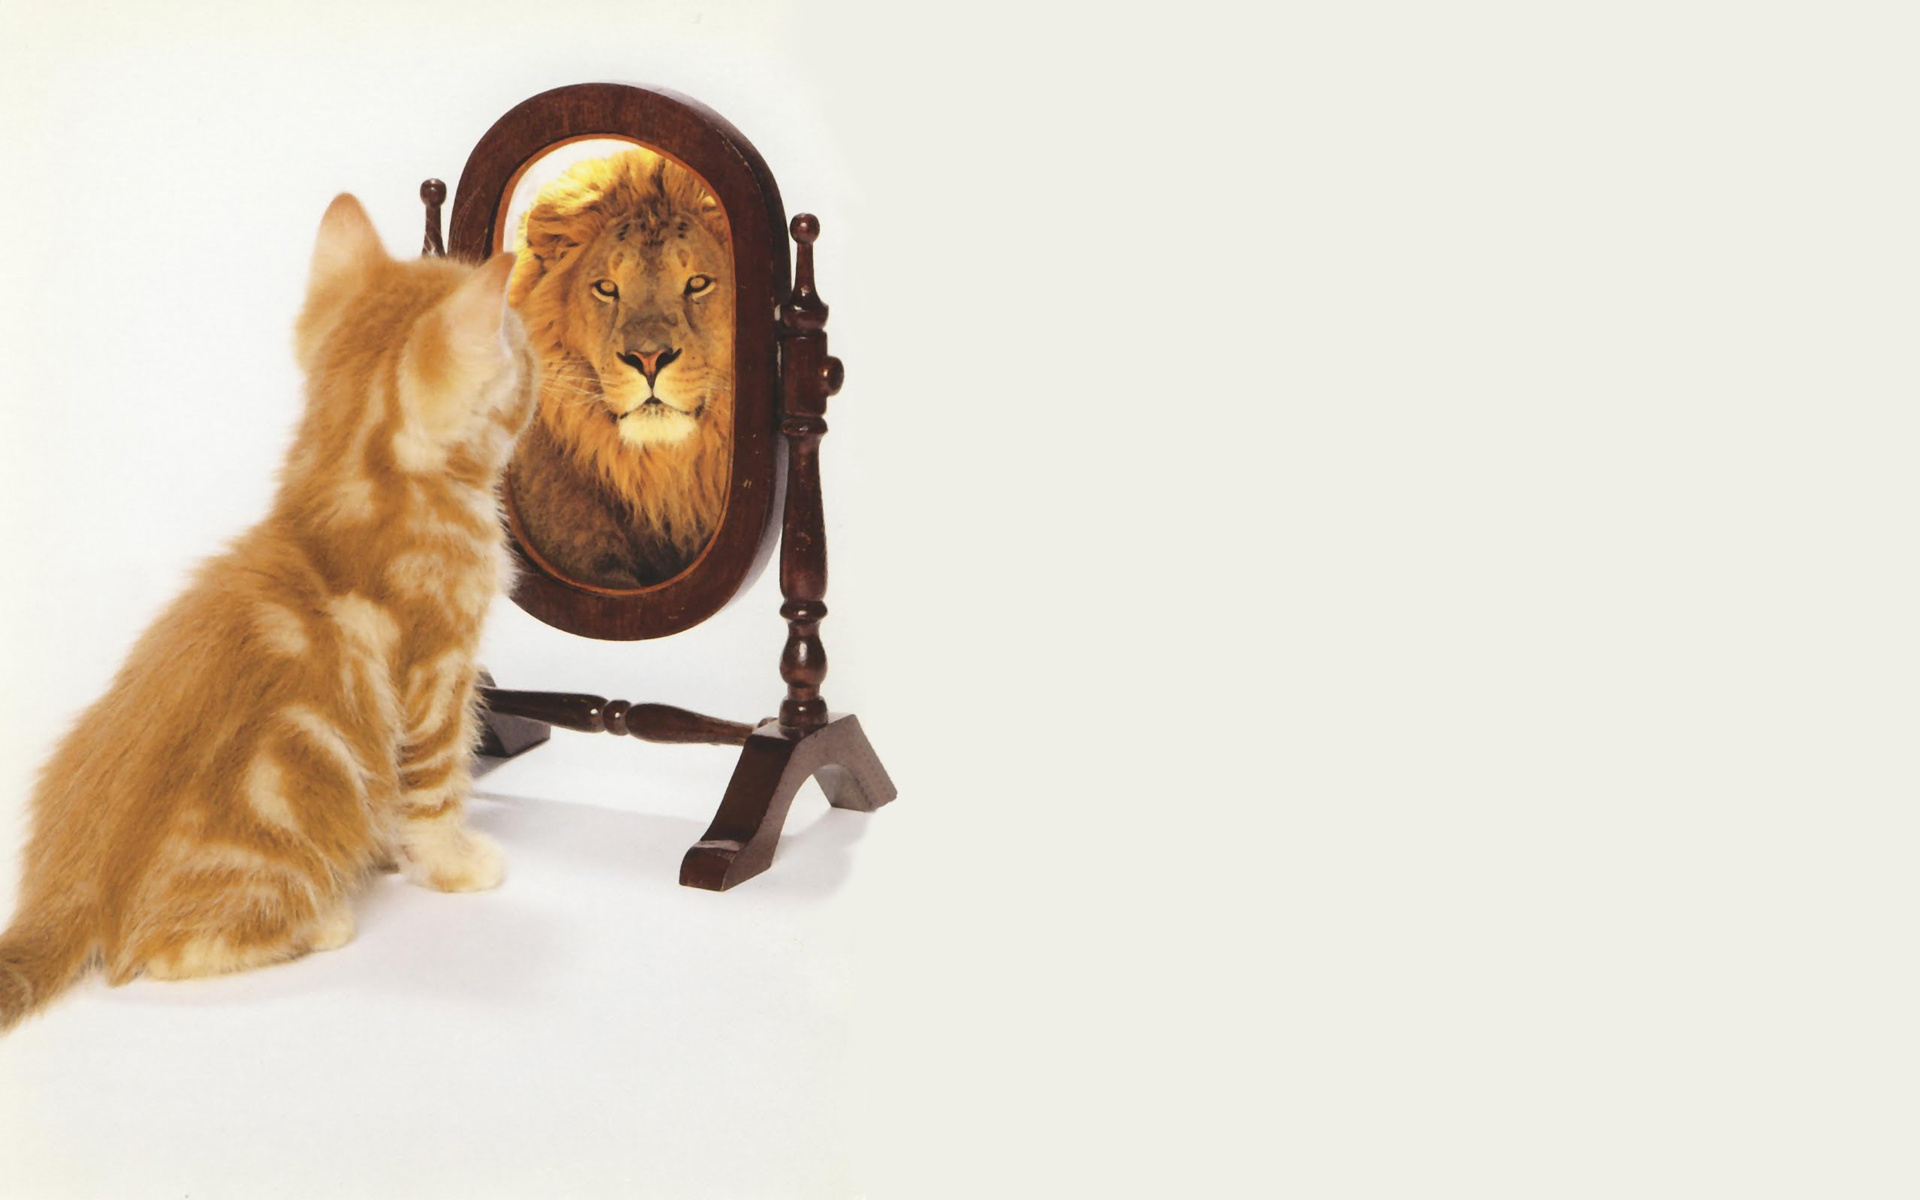 Being self-aware: do you see what they see in you?